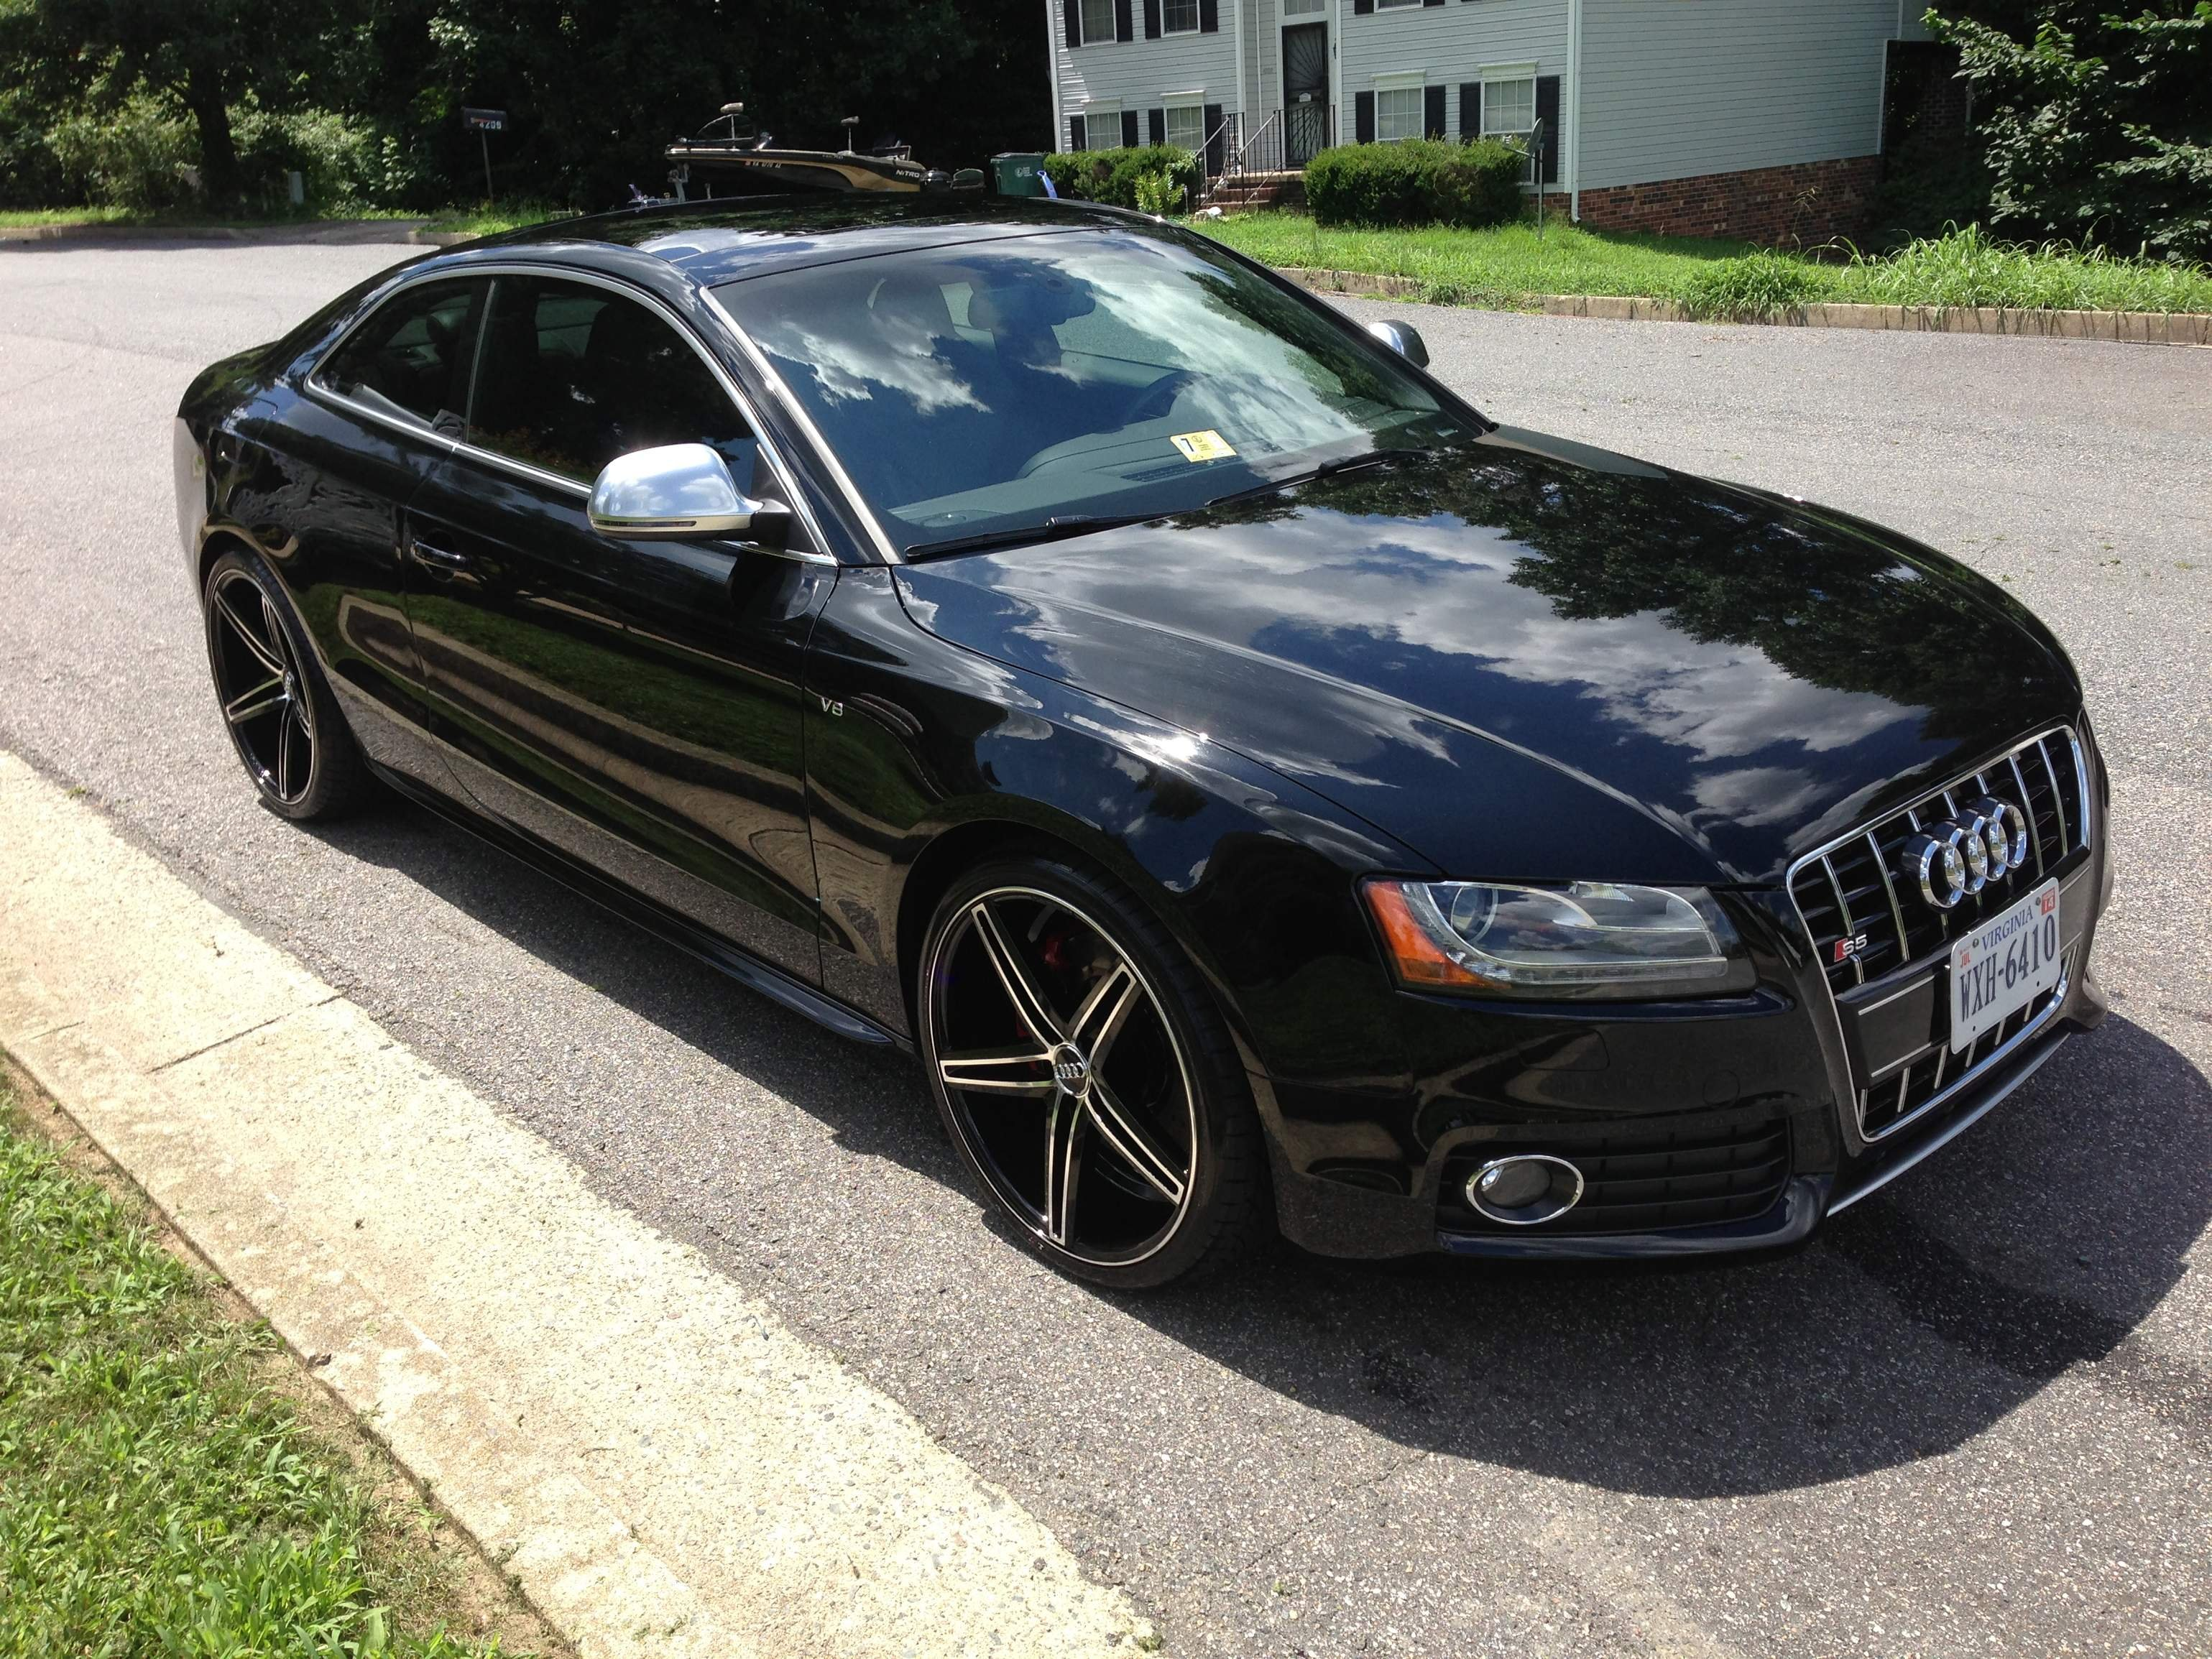 image paint img for size red attachment performance click caliper version forum forums larger mods views audi westchester name